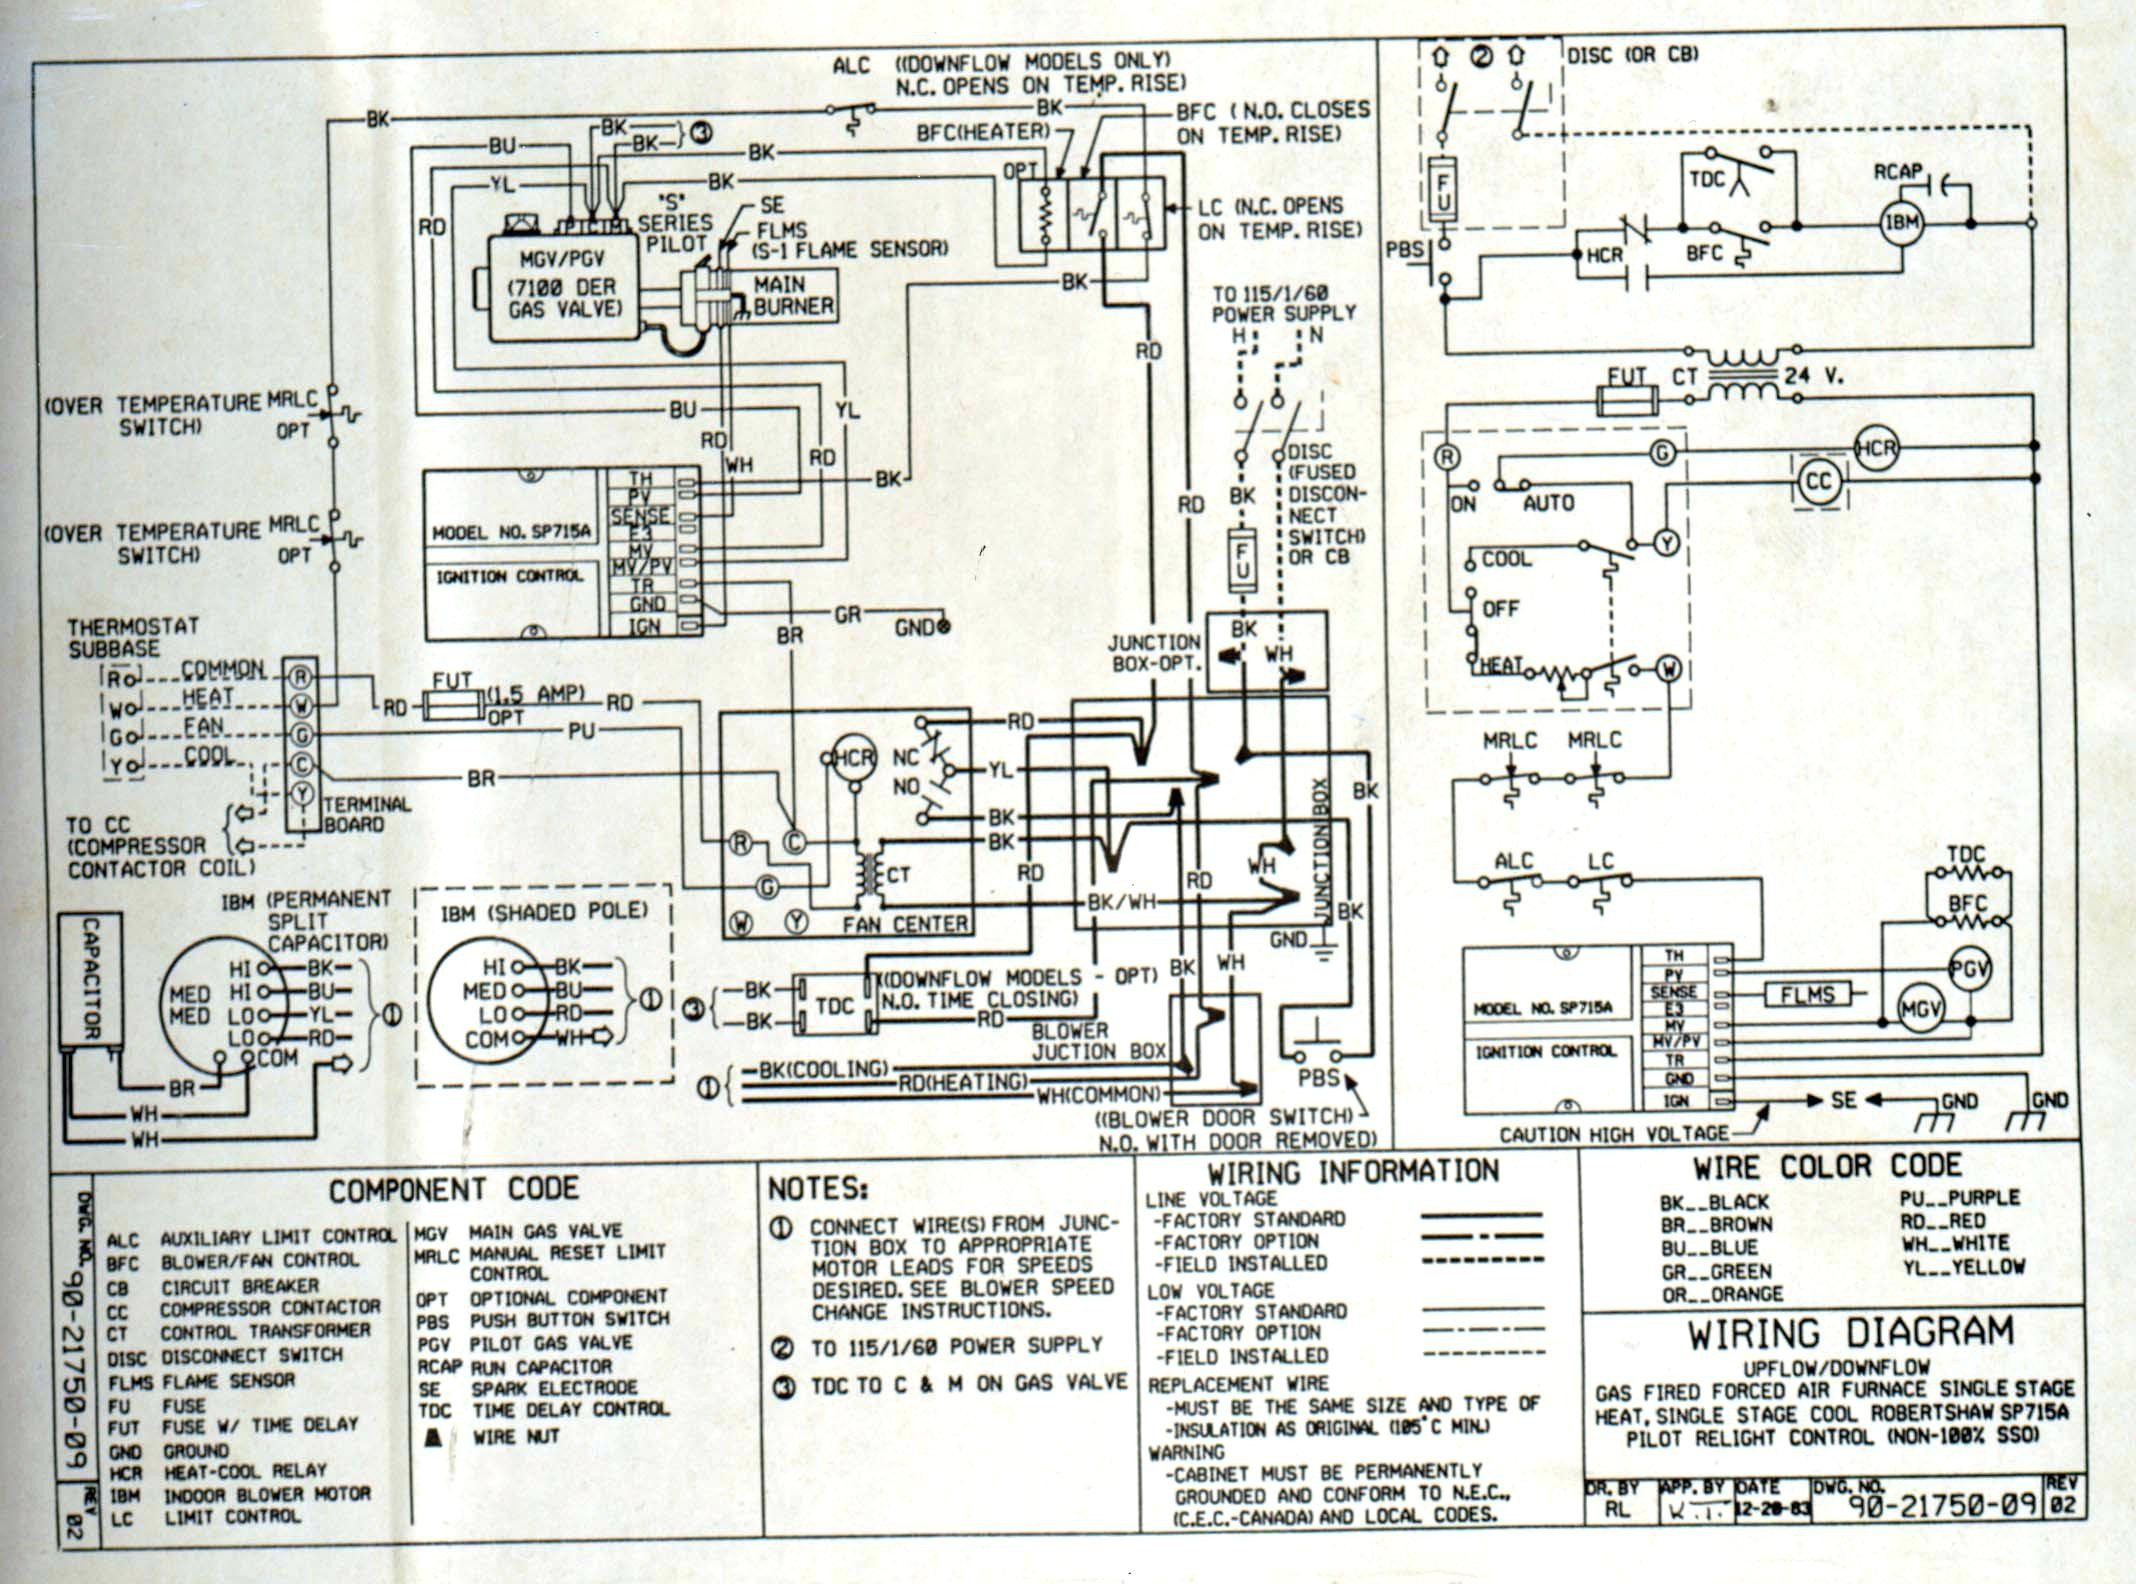 Capacitor Start Capacitor Run Motor Wiring Diagram Fresh Furnas - Capacitor Start Capacitor Run Motor Wiring Diagram